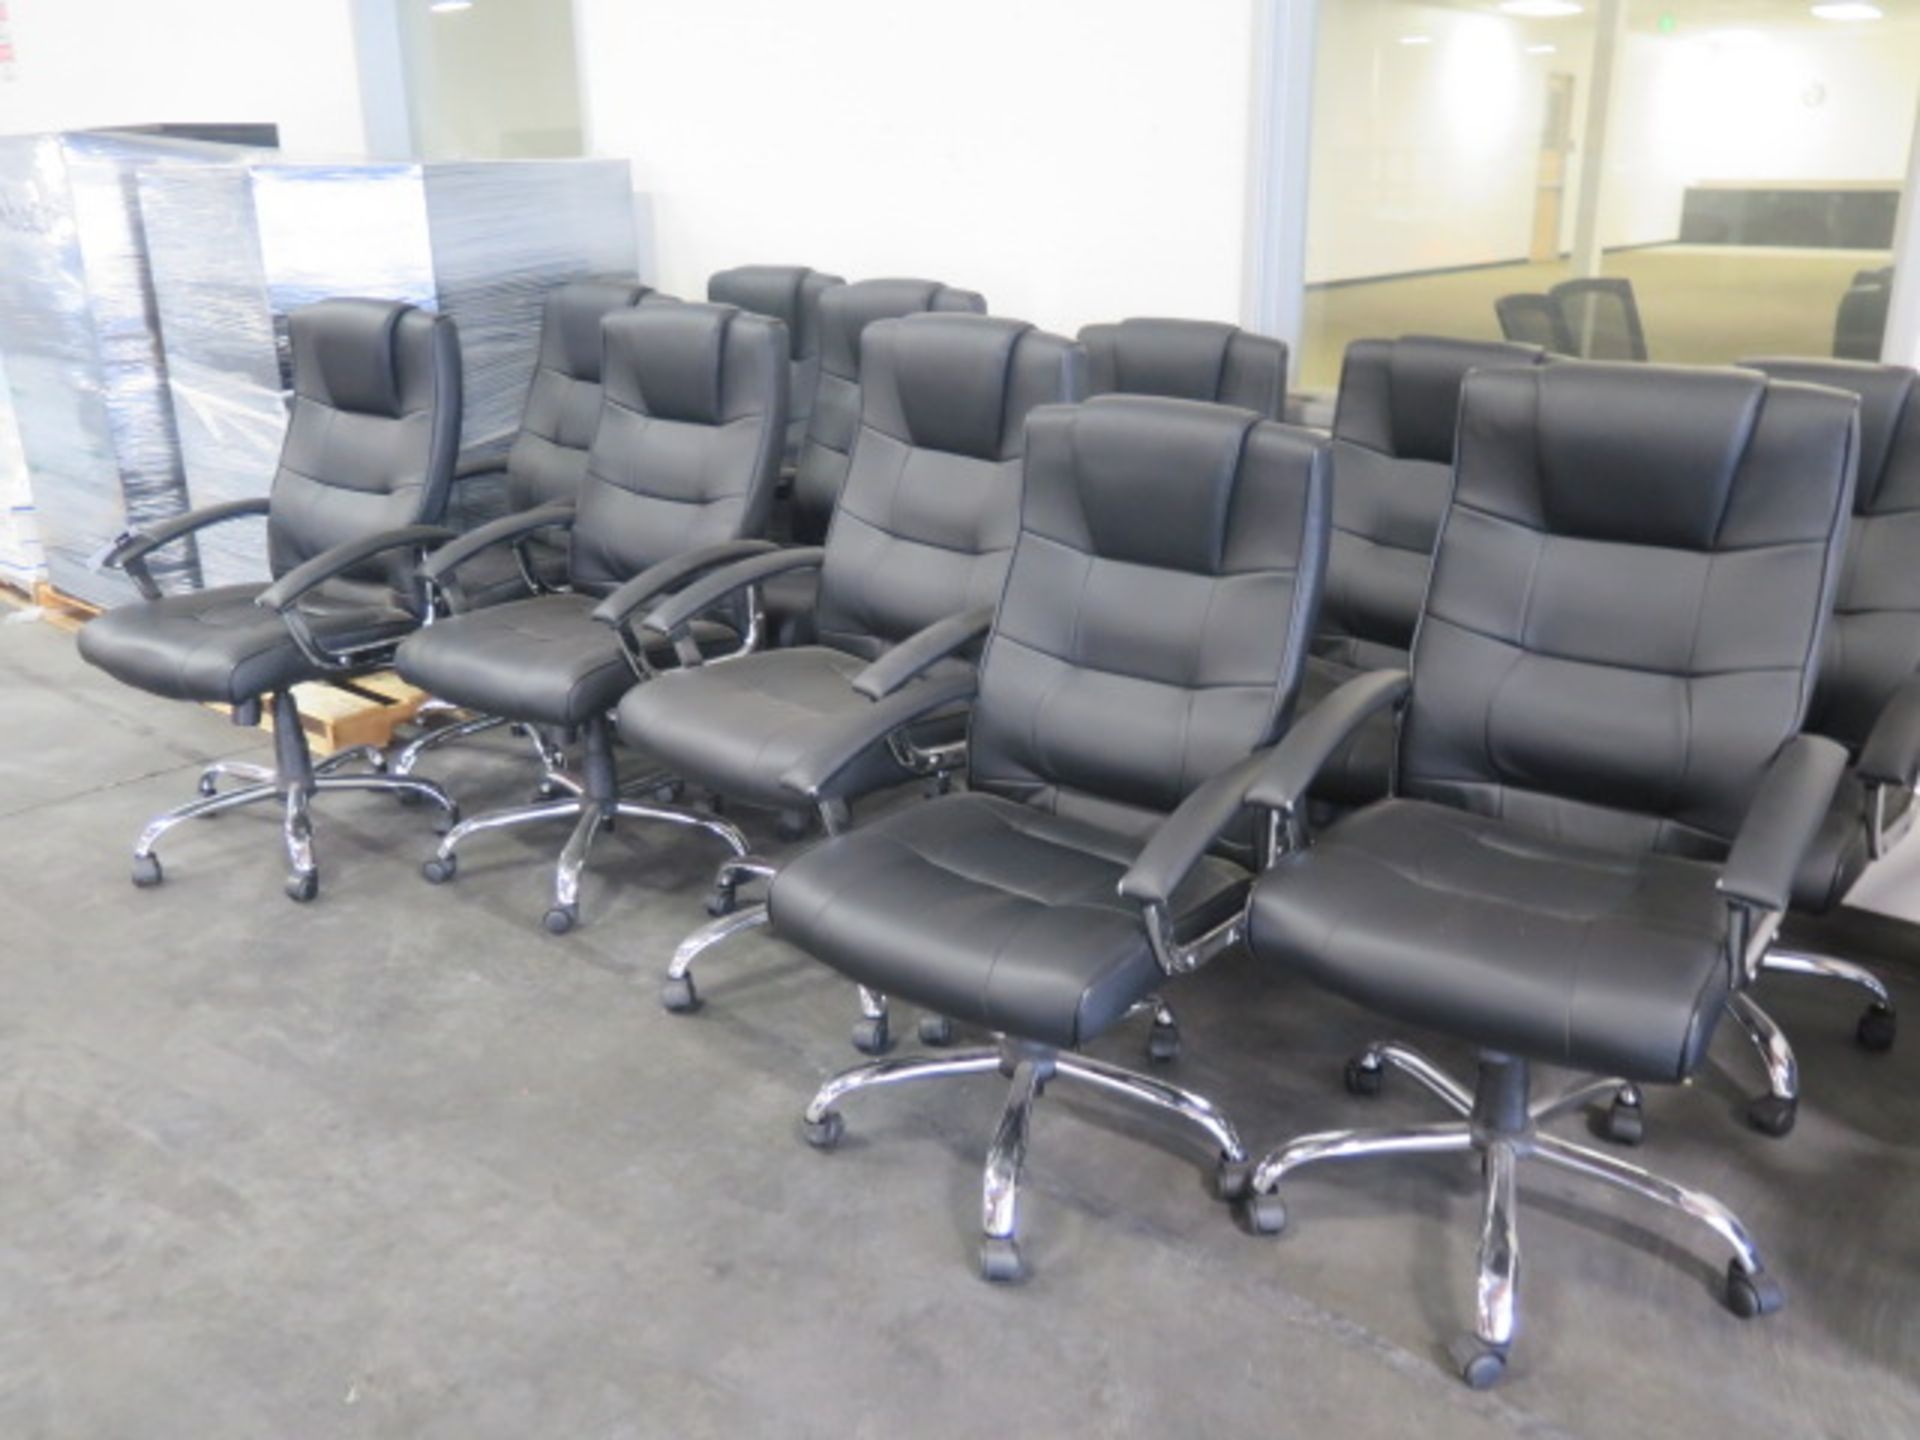 Conference / Office Chairs (11) (SOLD AS-IS - NO WARRANTY) - Image 2 of 4